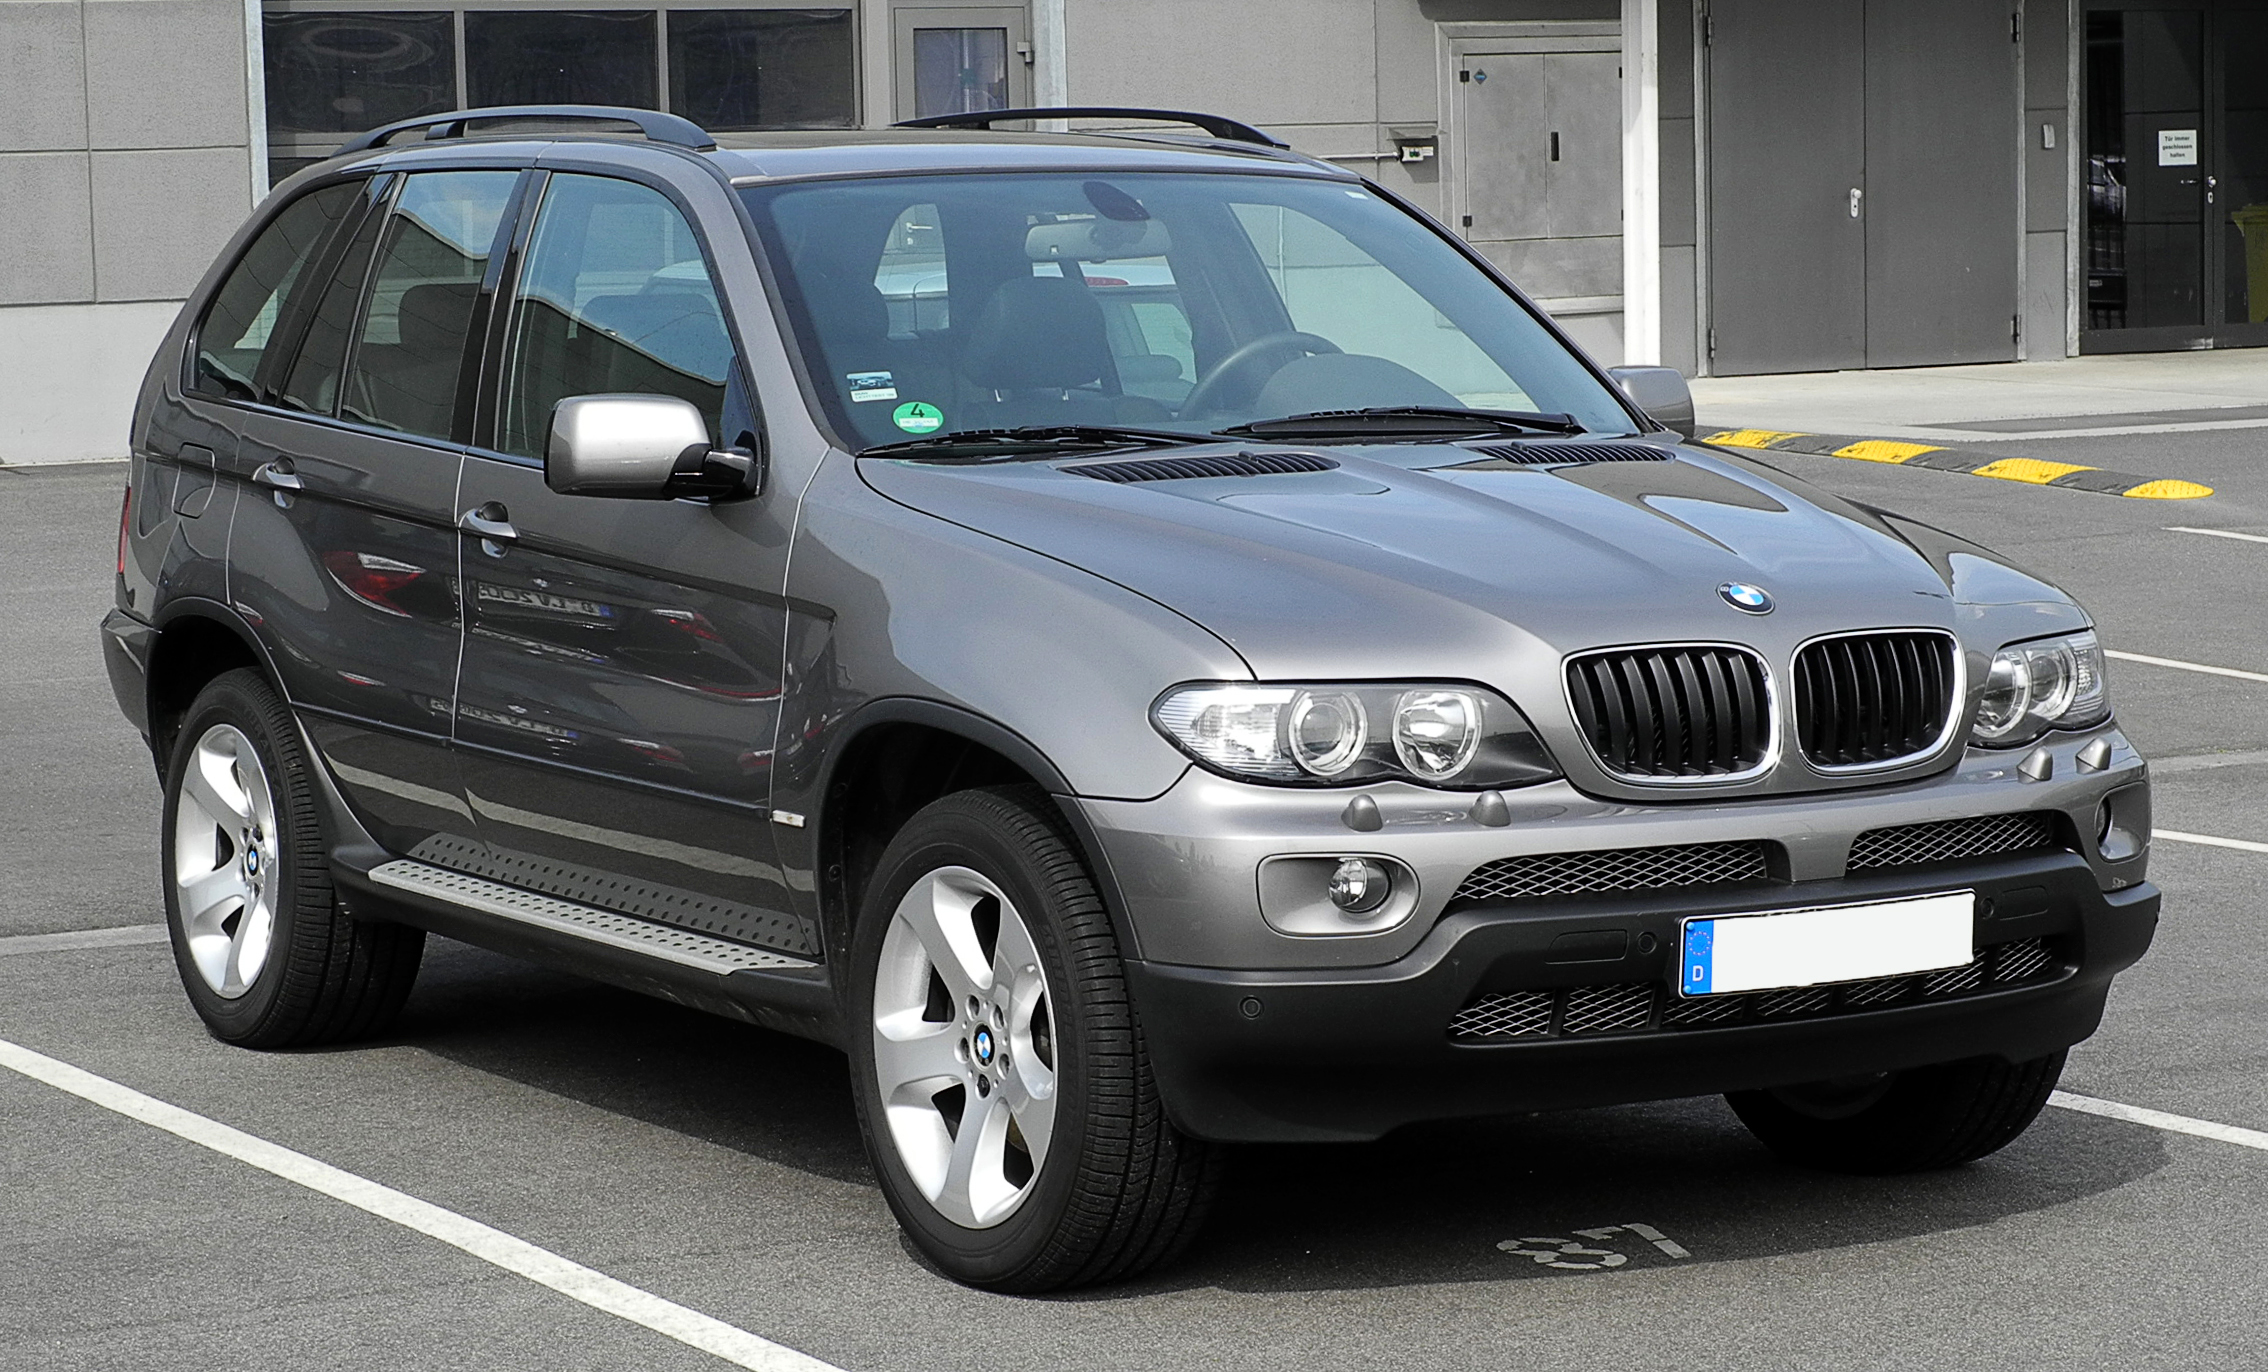 fichier bmw x5 e53 facelift frontansicht 12 juni 2011 d wikip dia. Black Bedroom Furniture Sets. Home Design Ideas